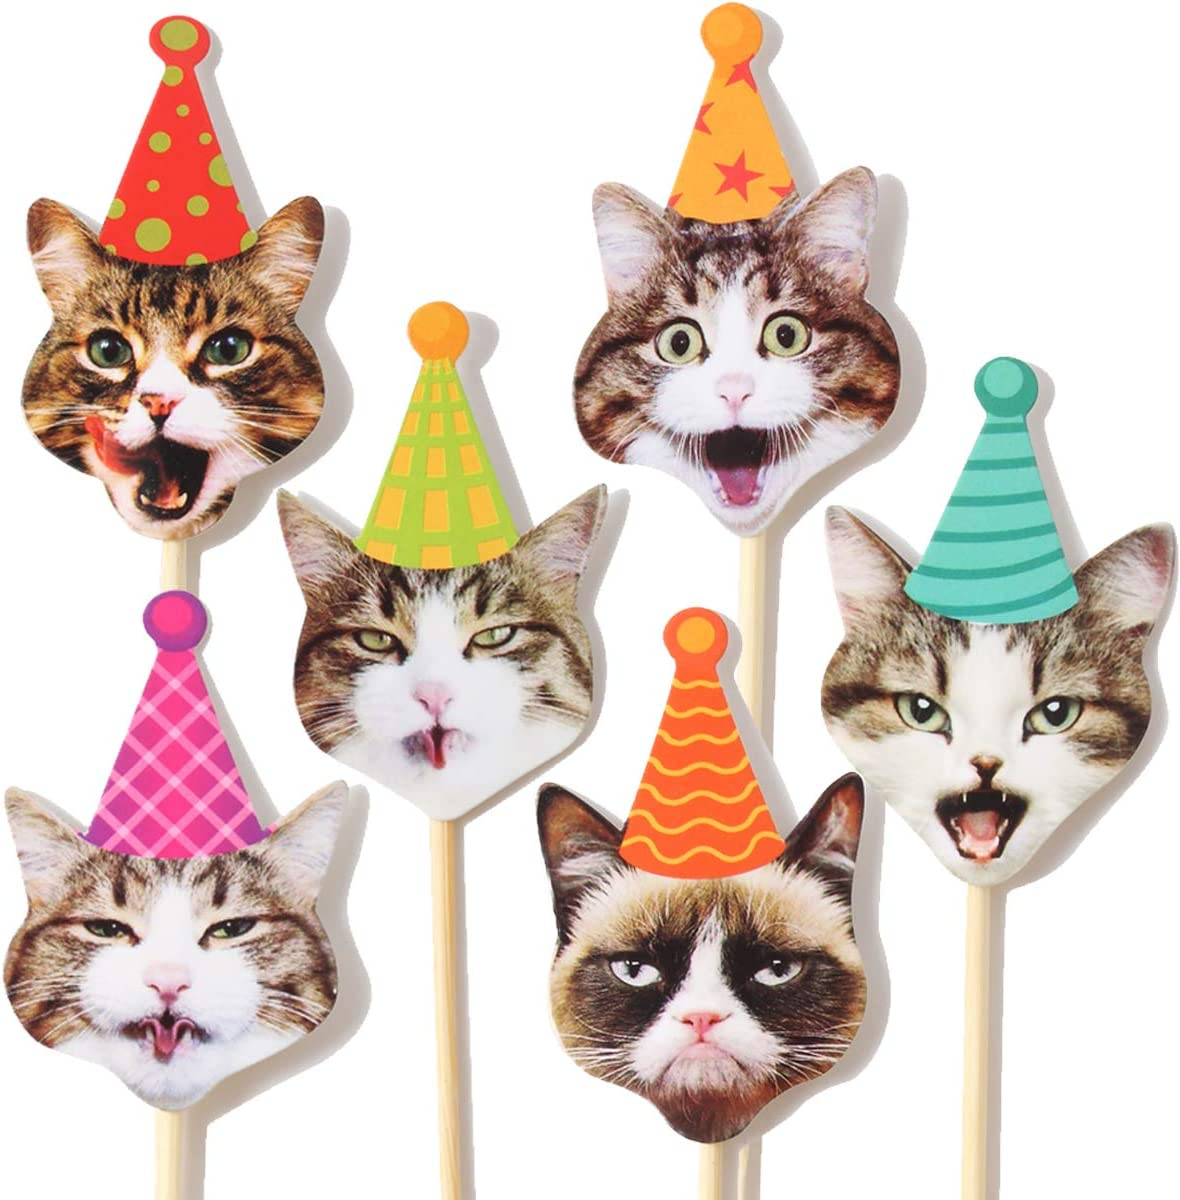 24Pcs Grumpy Cat Cake Cupcake Toppers Cat Birthday Party Favors Decorations Stick Toothpicks Supplies Perfect For Kid's Birthday Parties Baby Shower Kid's Party Cat Party Safe Sturdy Sticks